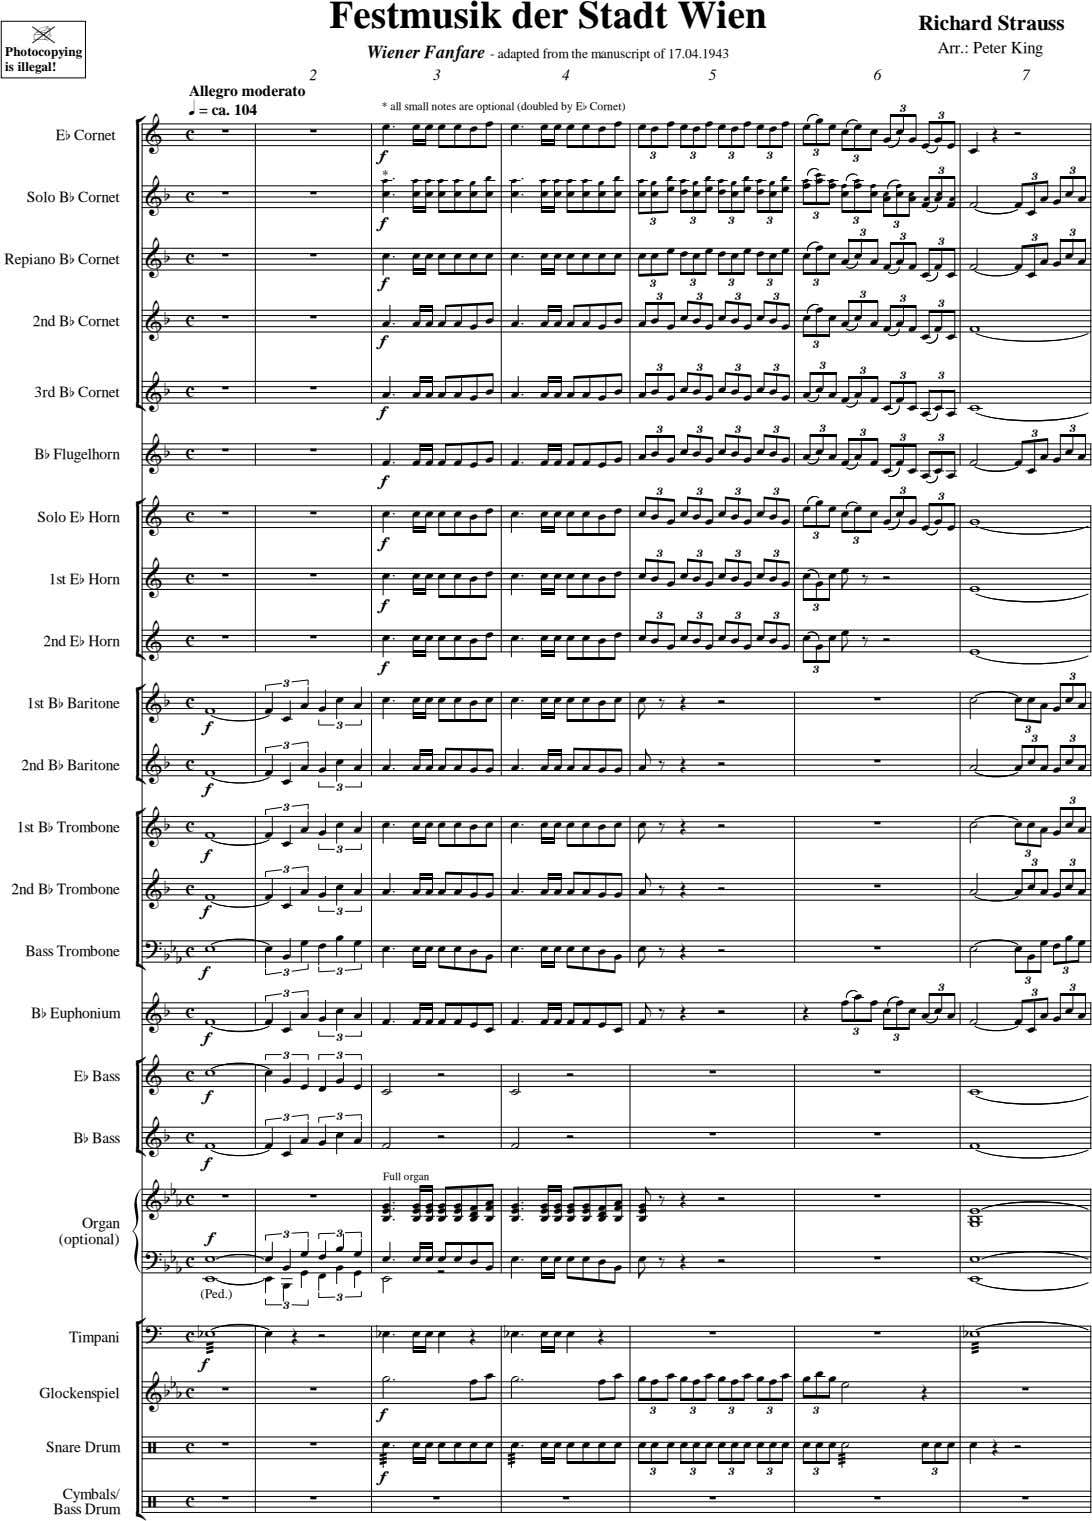 Festmusik der Stadt Wien Richard Strauss | Arr.: Peter King Photocopying Wiener Fanfare - adapted